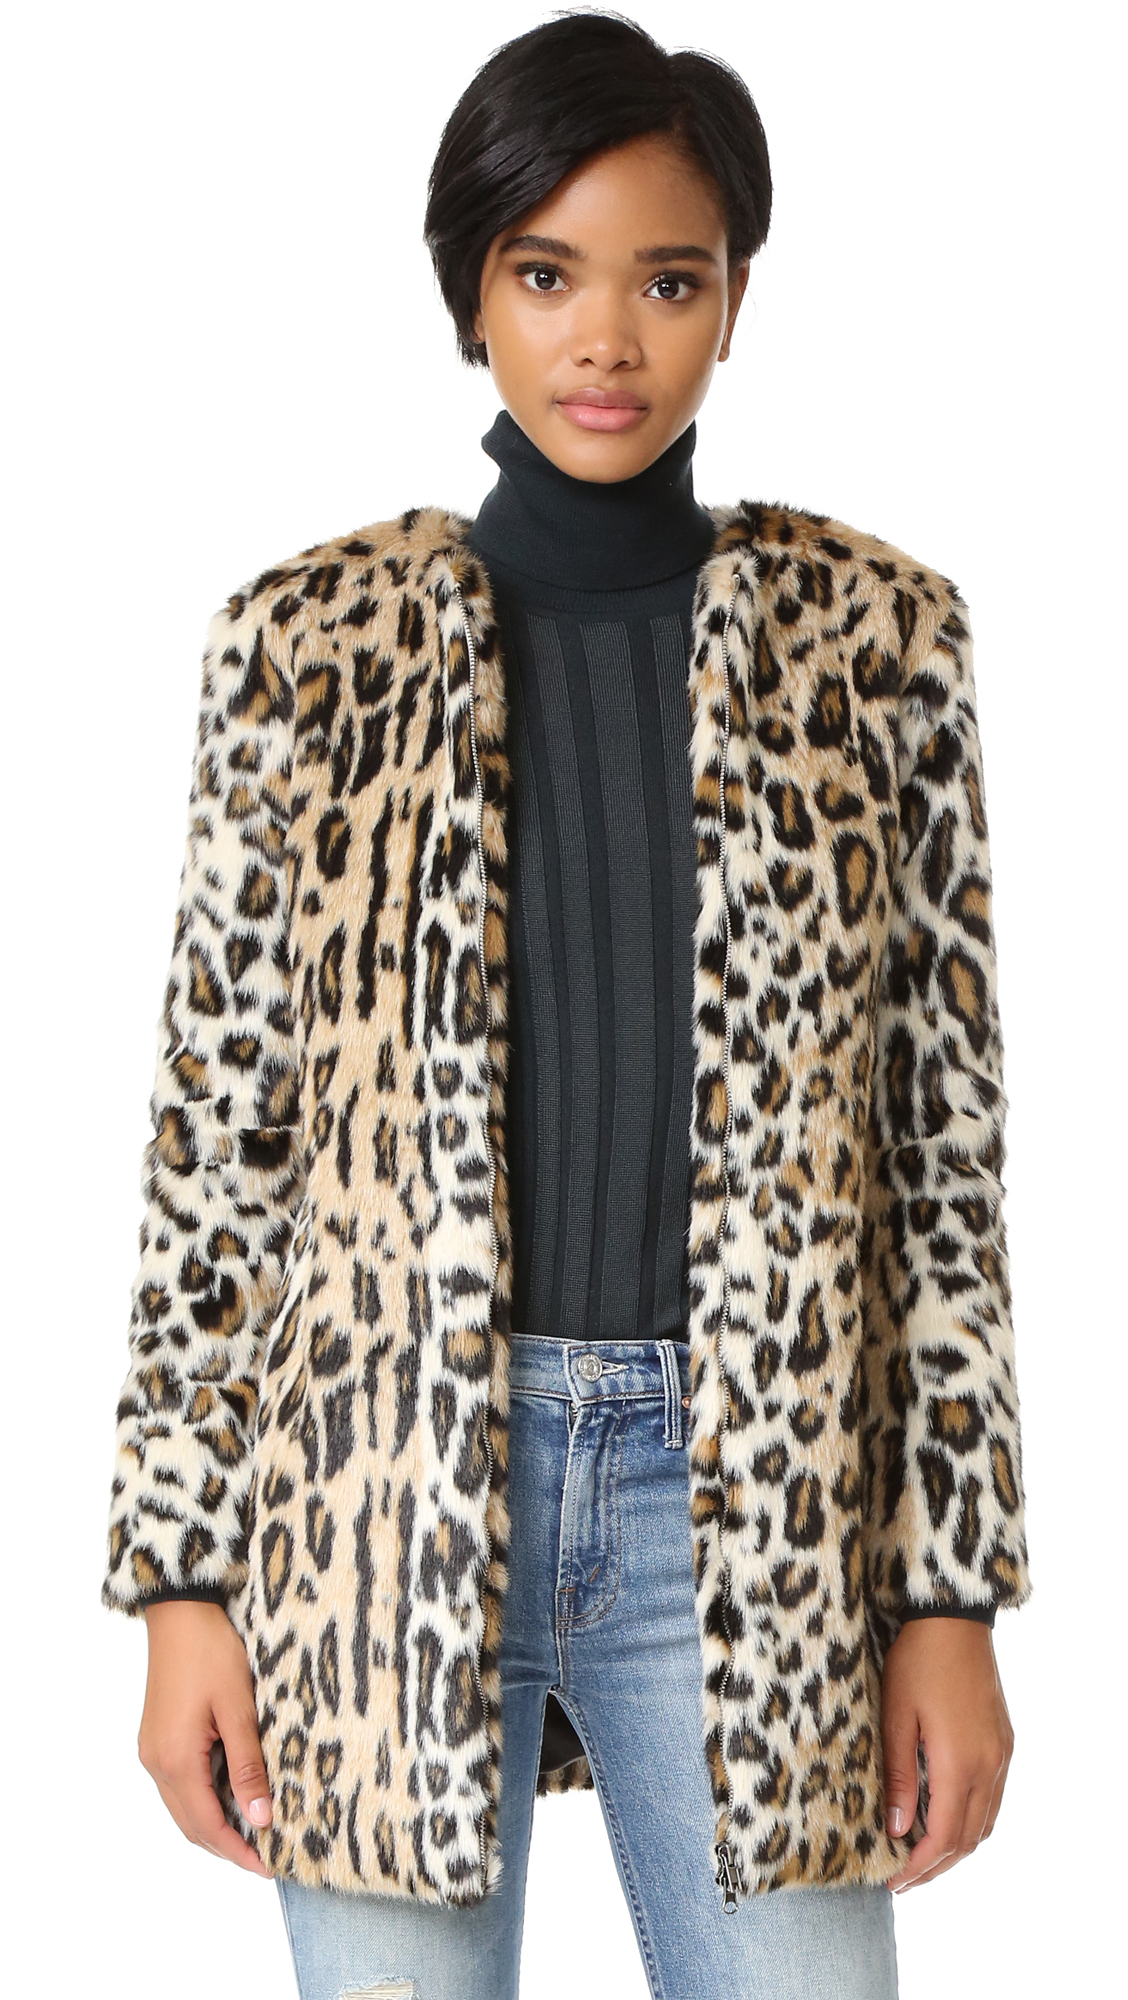 This cupcakes and cashmere coat makes a daring impression in leopard print faux fur. Zip placket and on seam pockets. Long sleeves. Lined. Fabric: Faux fur. Shell: 74% modacrylic/13% acrylic/13% polyester. Lining: 100% polyester. Hand wash. Imported, China.